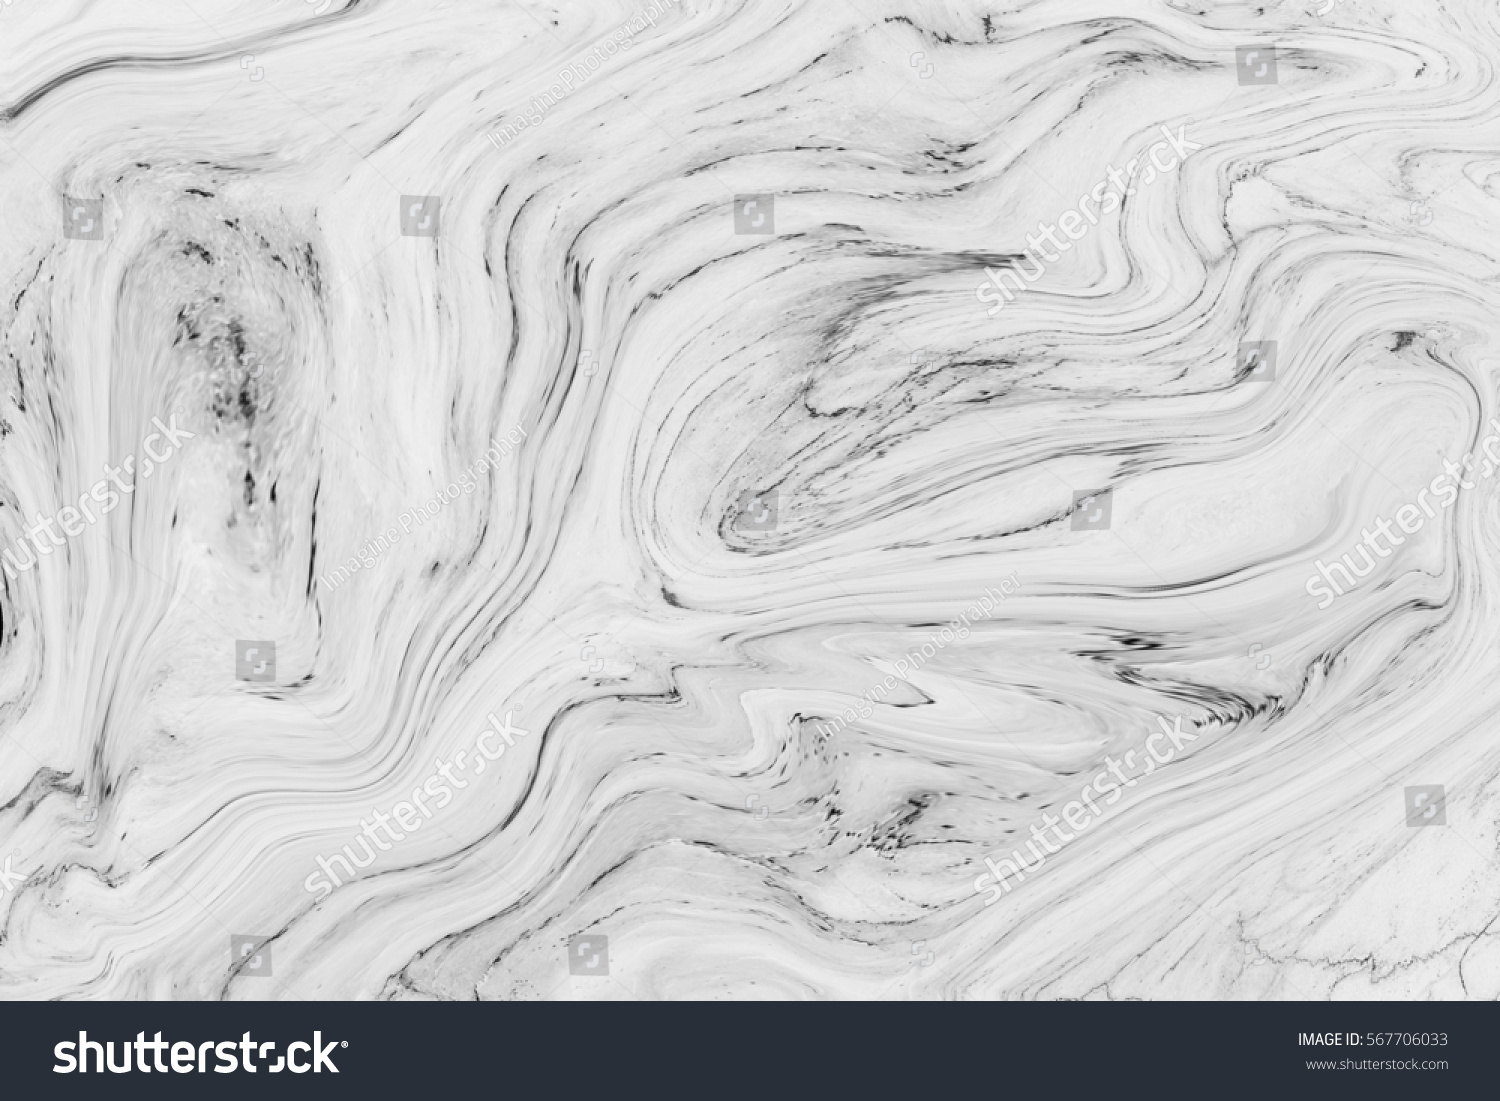 Must see Wallpaper Marble Black And White - stock-photo-white-marble-black-pattern-ink-acrylic-painted-waves-texture-background-for-wallpaper-567706033  HD_64165.jpg